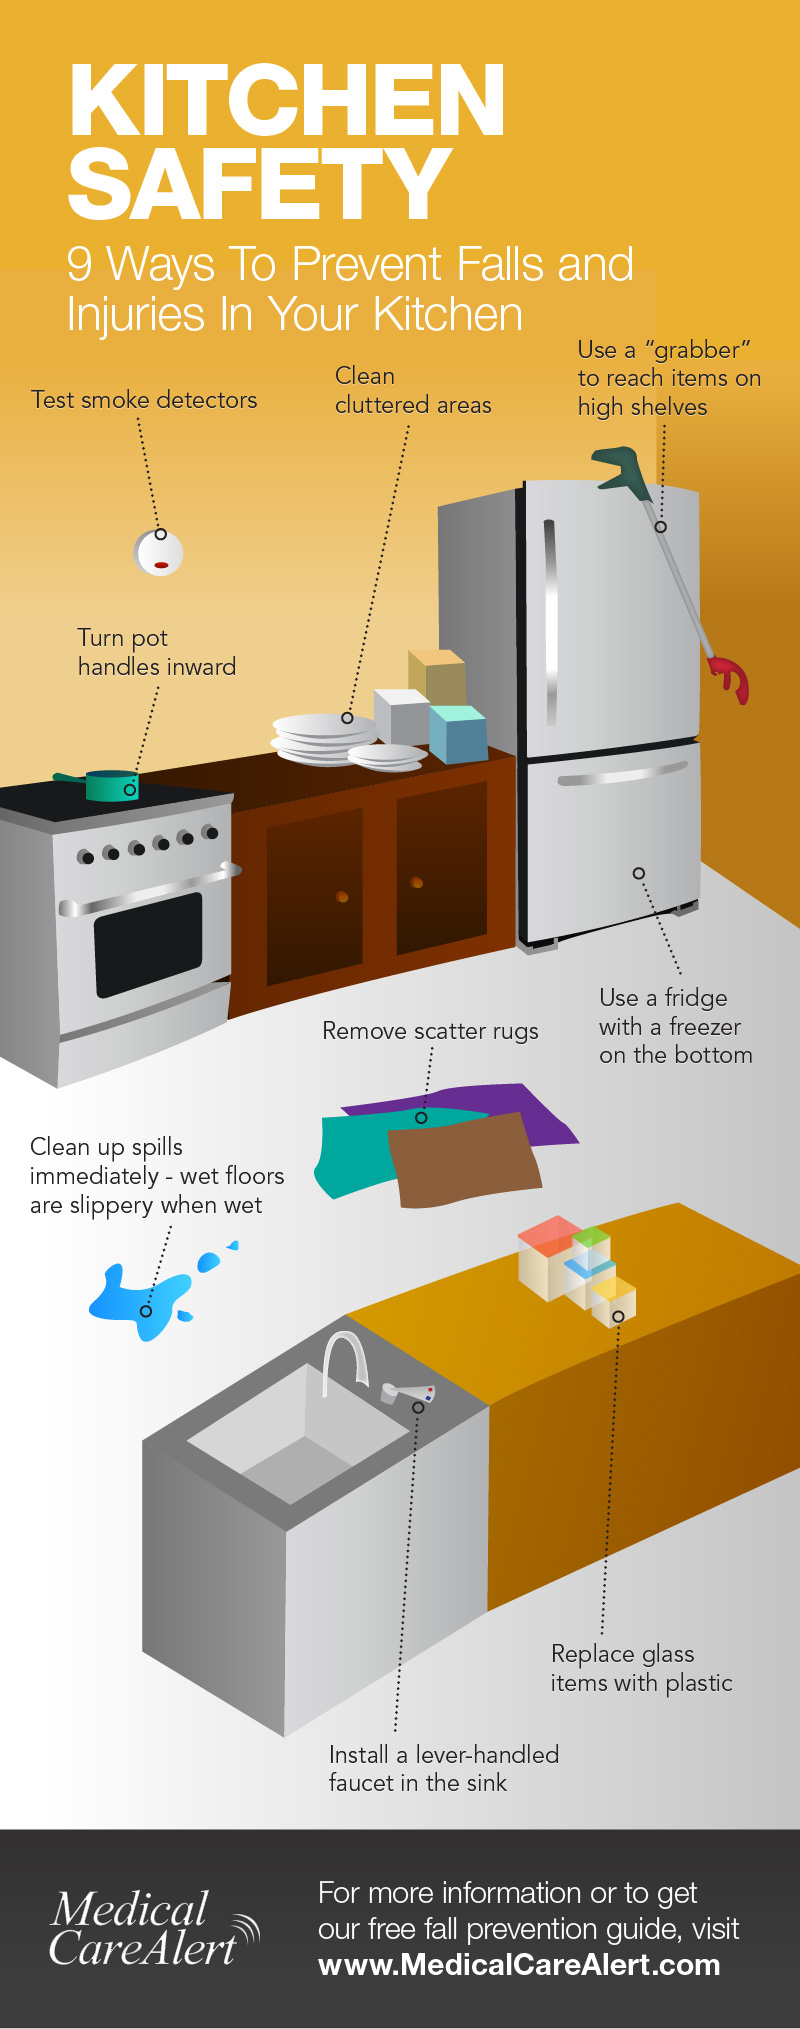 9 Ways to Prevent Falls in the Kitchen – Infographic Portal